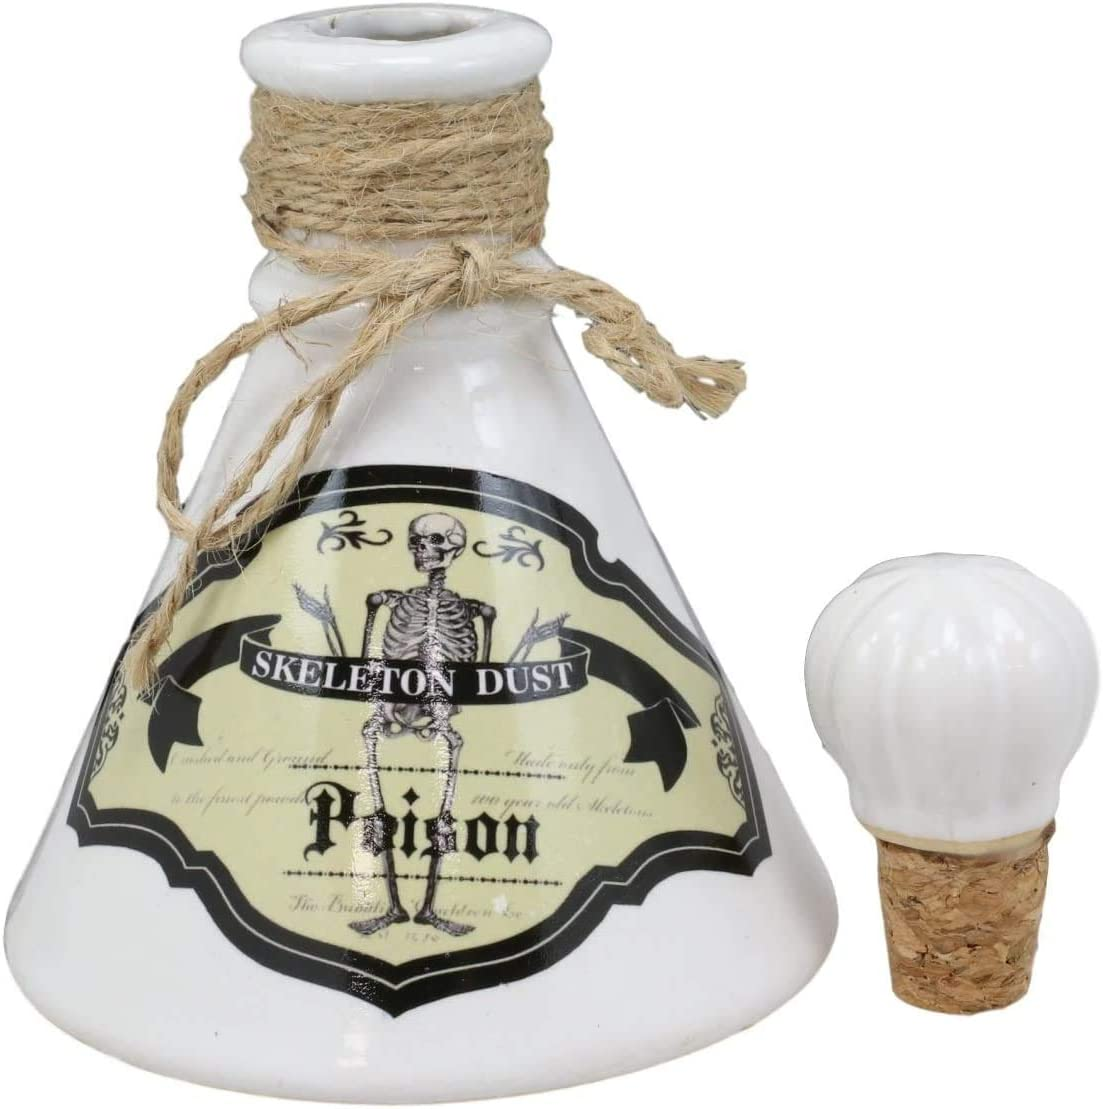 Ebros Gift Ceramic Mad Doctor Scientist Witchcraft And Sorcery Poison Prop Potion Bottle Macabre Dungeon Alchemy Halloween Accessory Small Display Container With Cork Lid (Skeleton Dust)